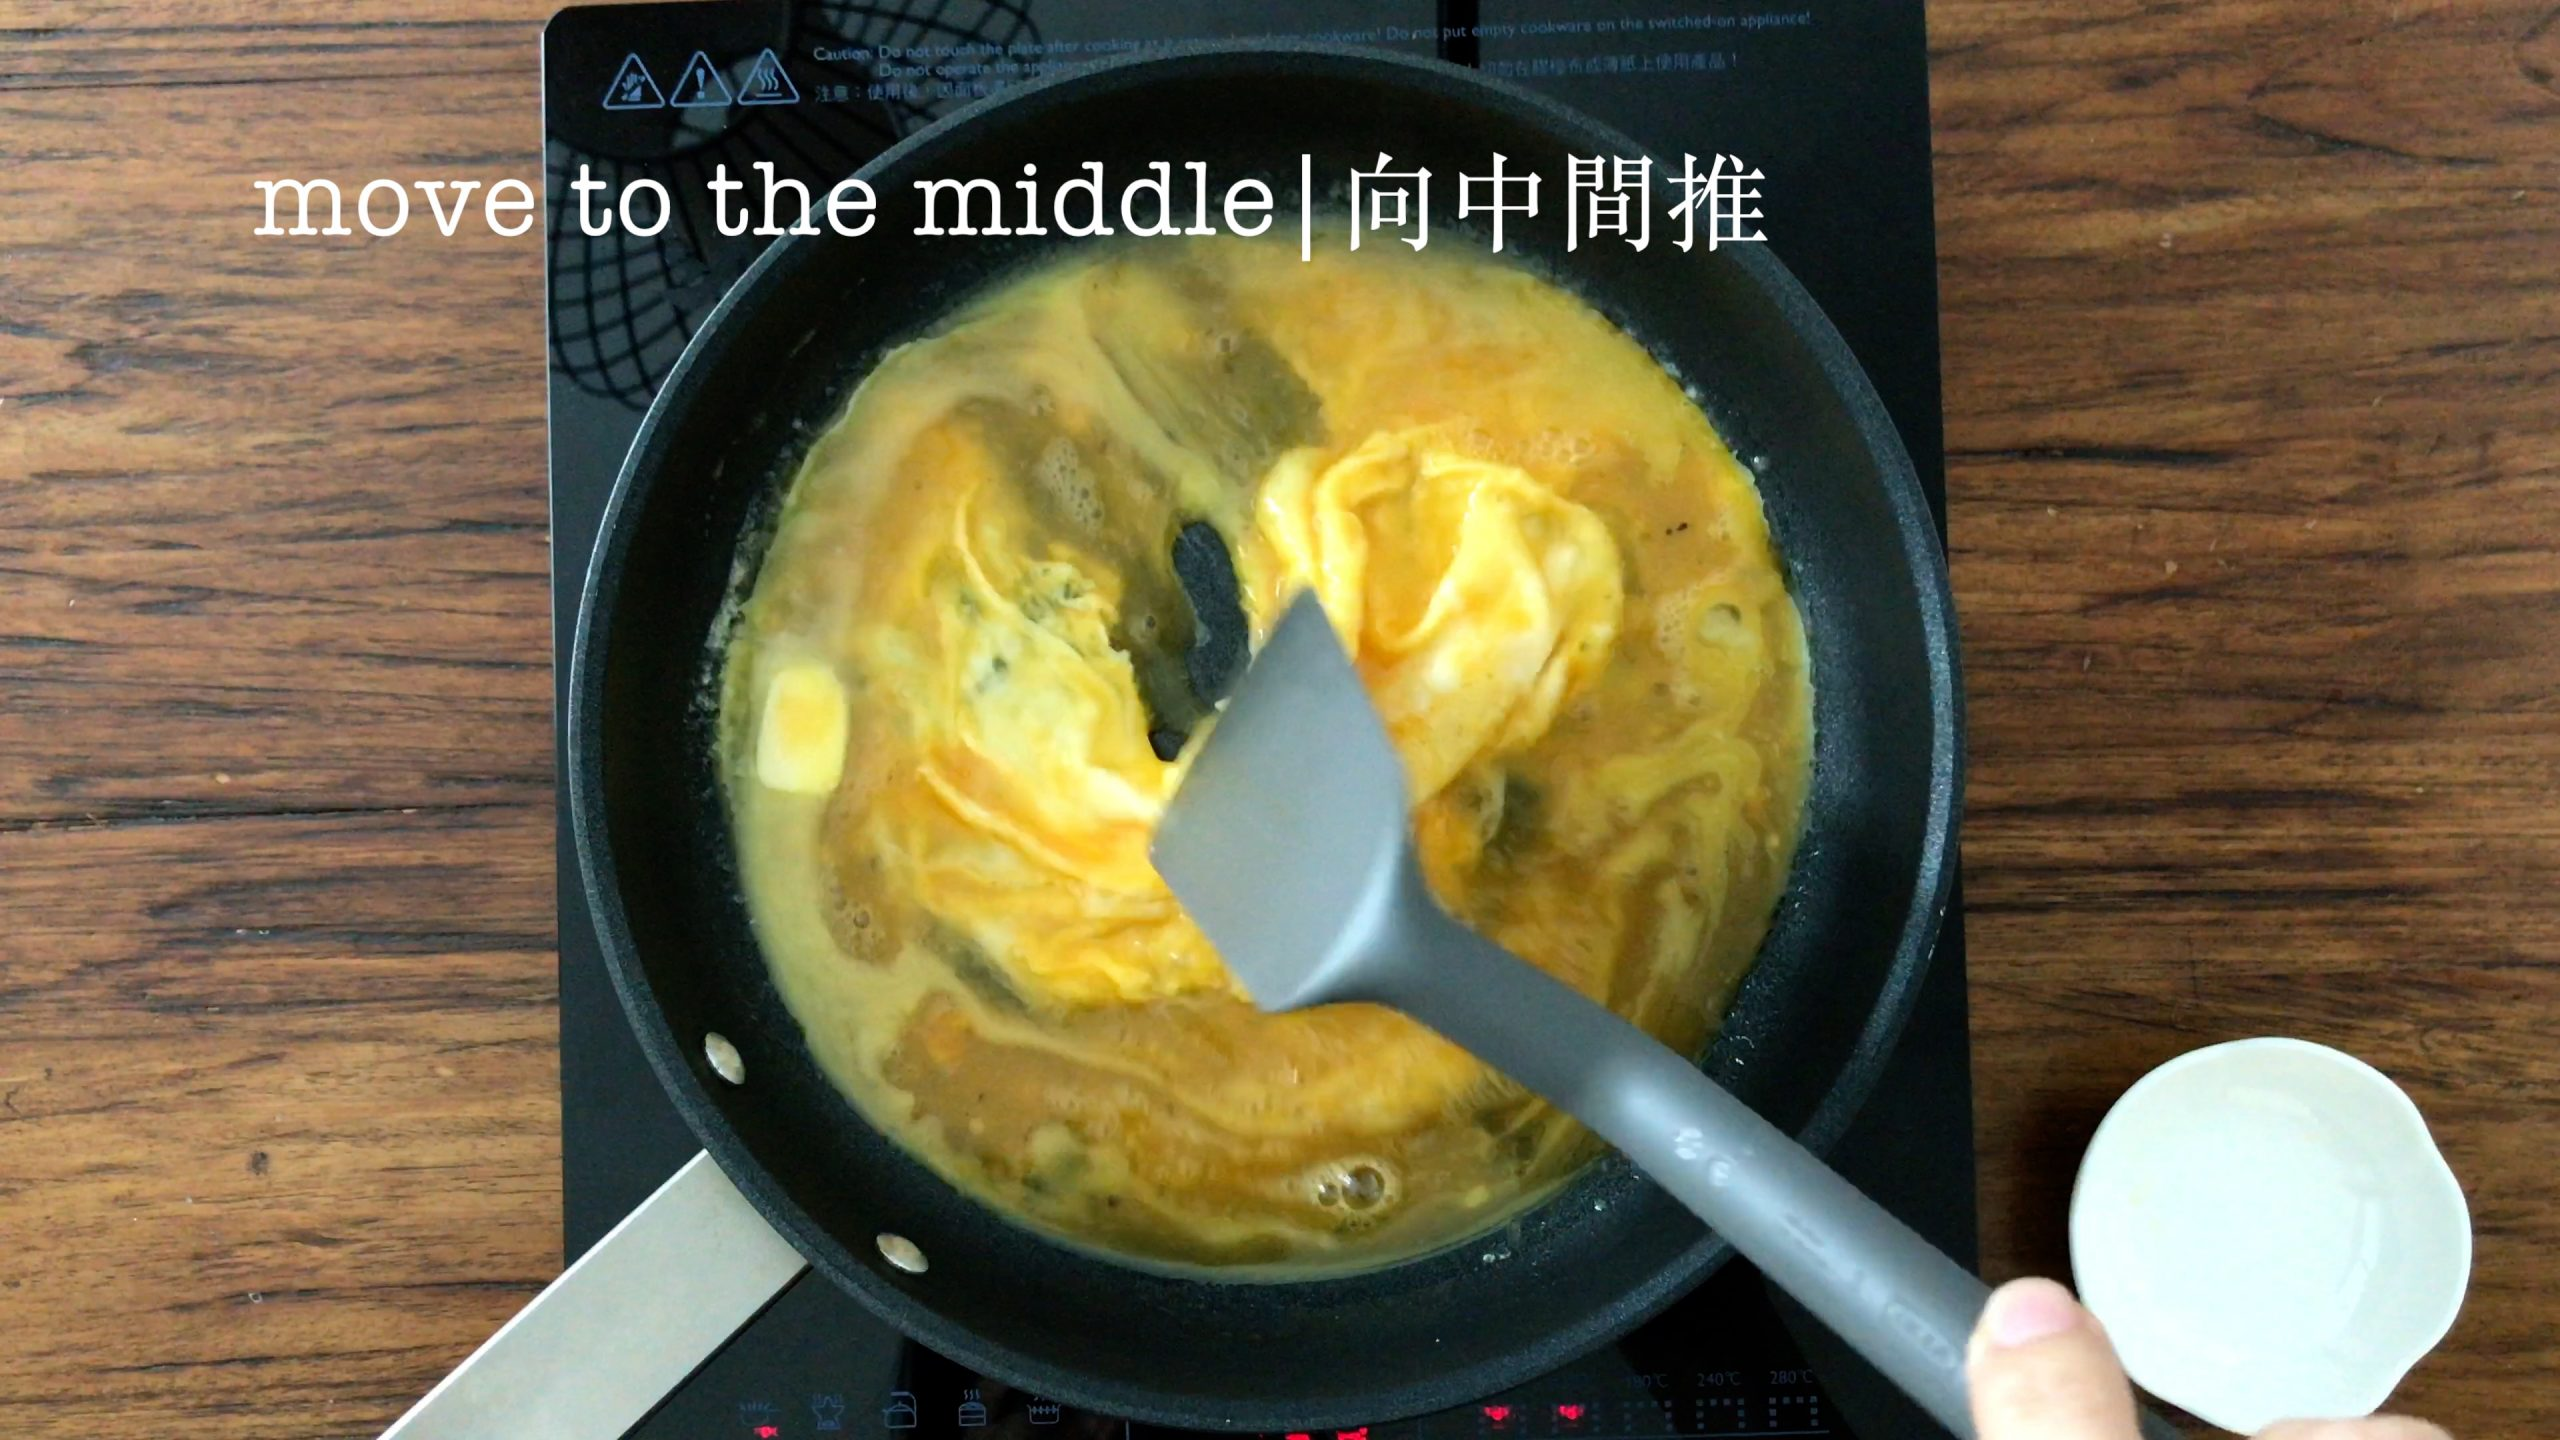 Using a grey spatula to move the egg mixed to the middle of a pan